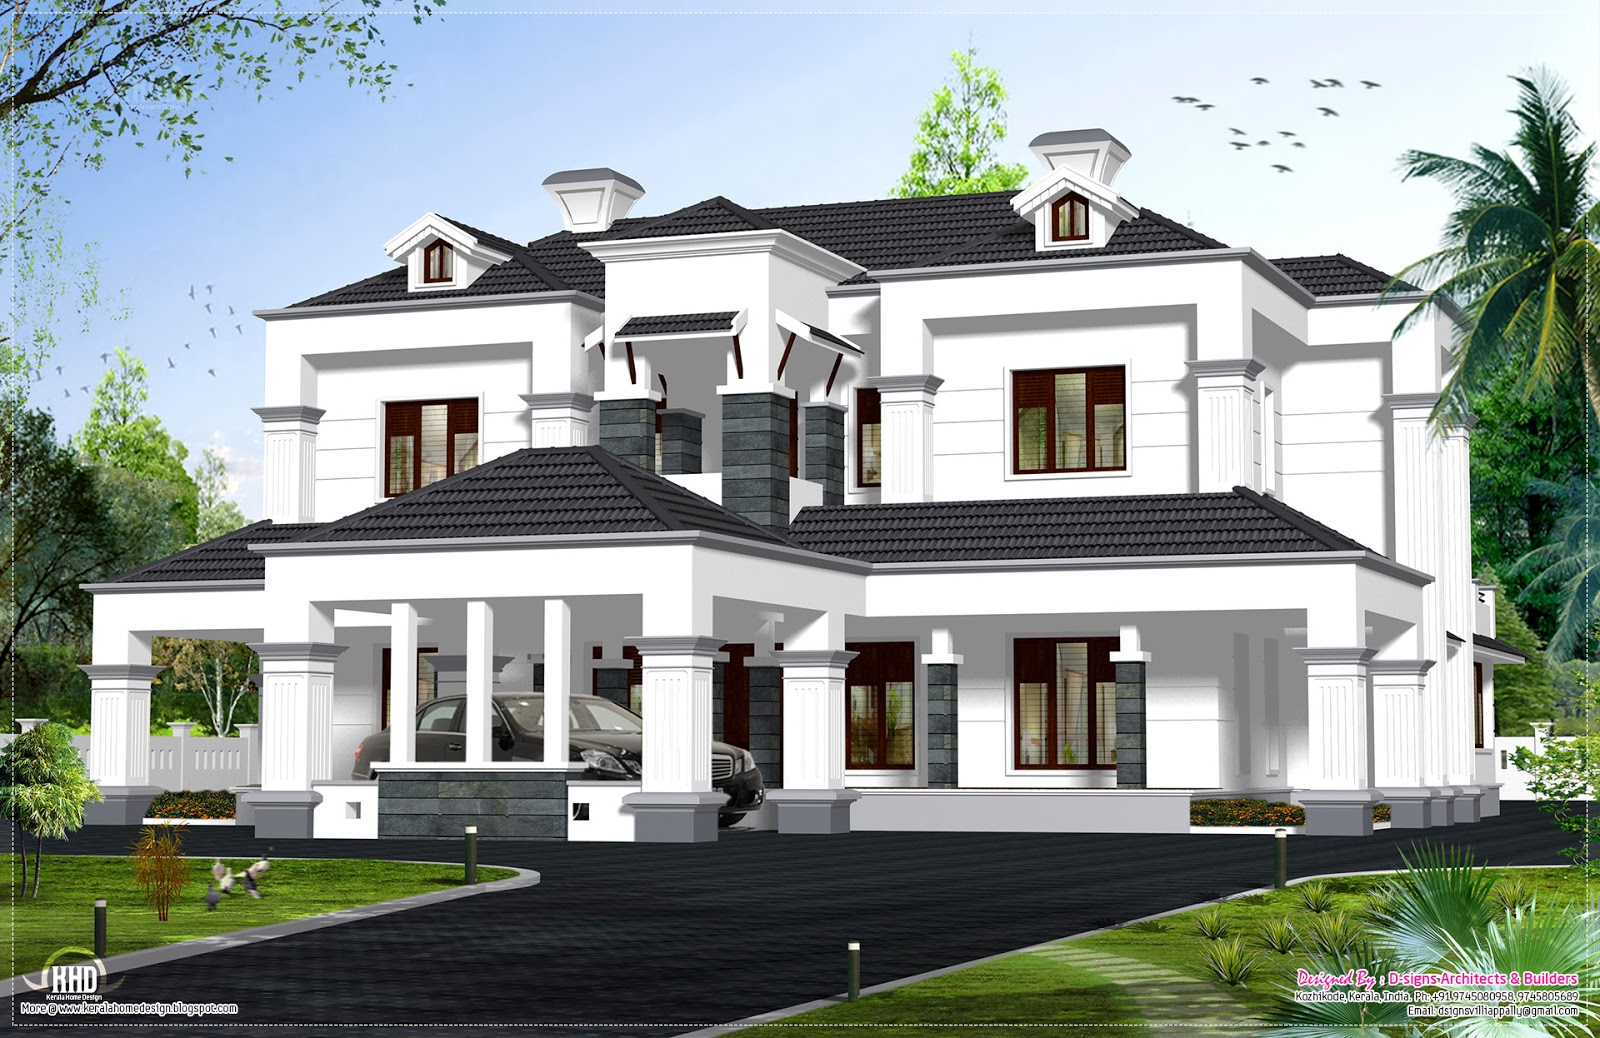 Victorian model house exterior kerala home design and for Best home image